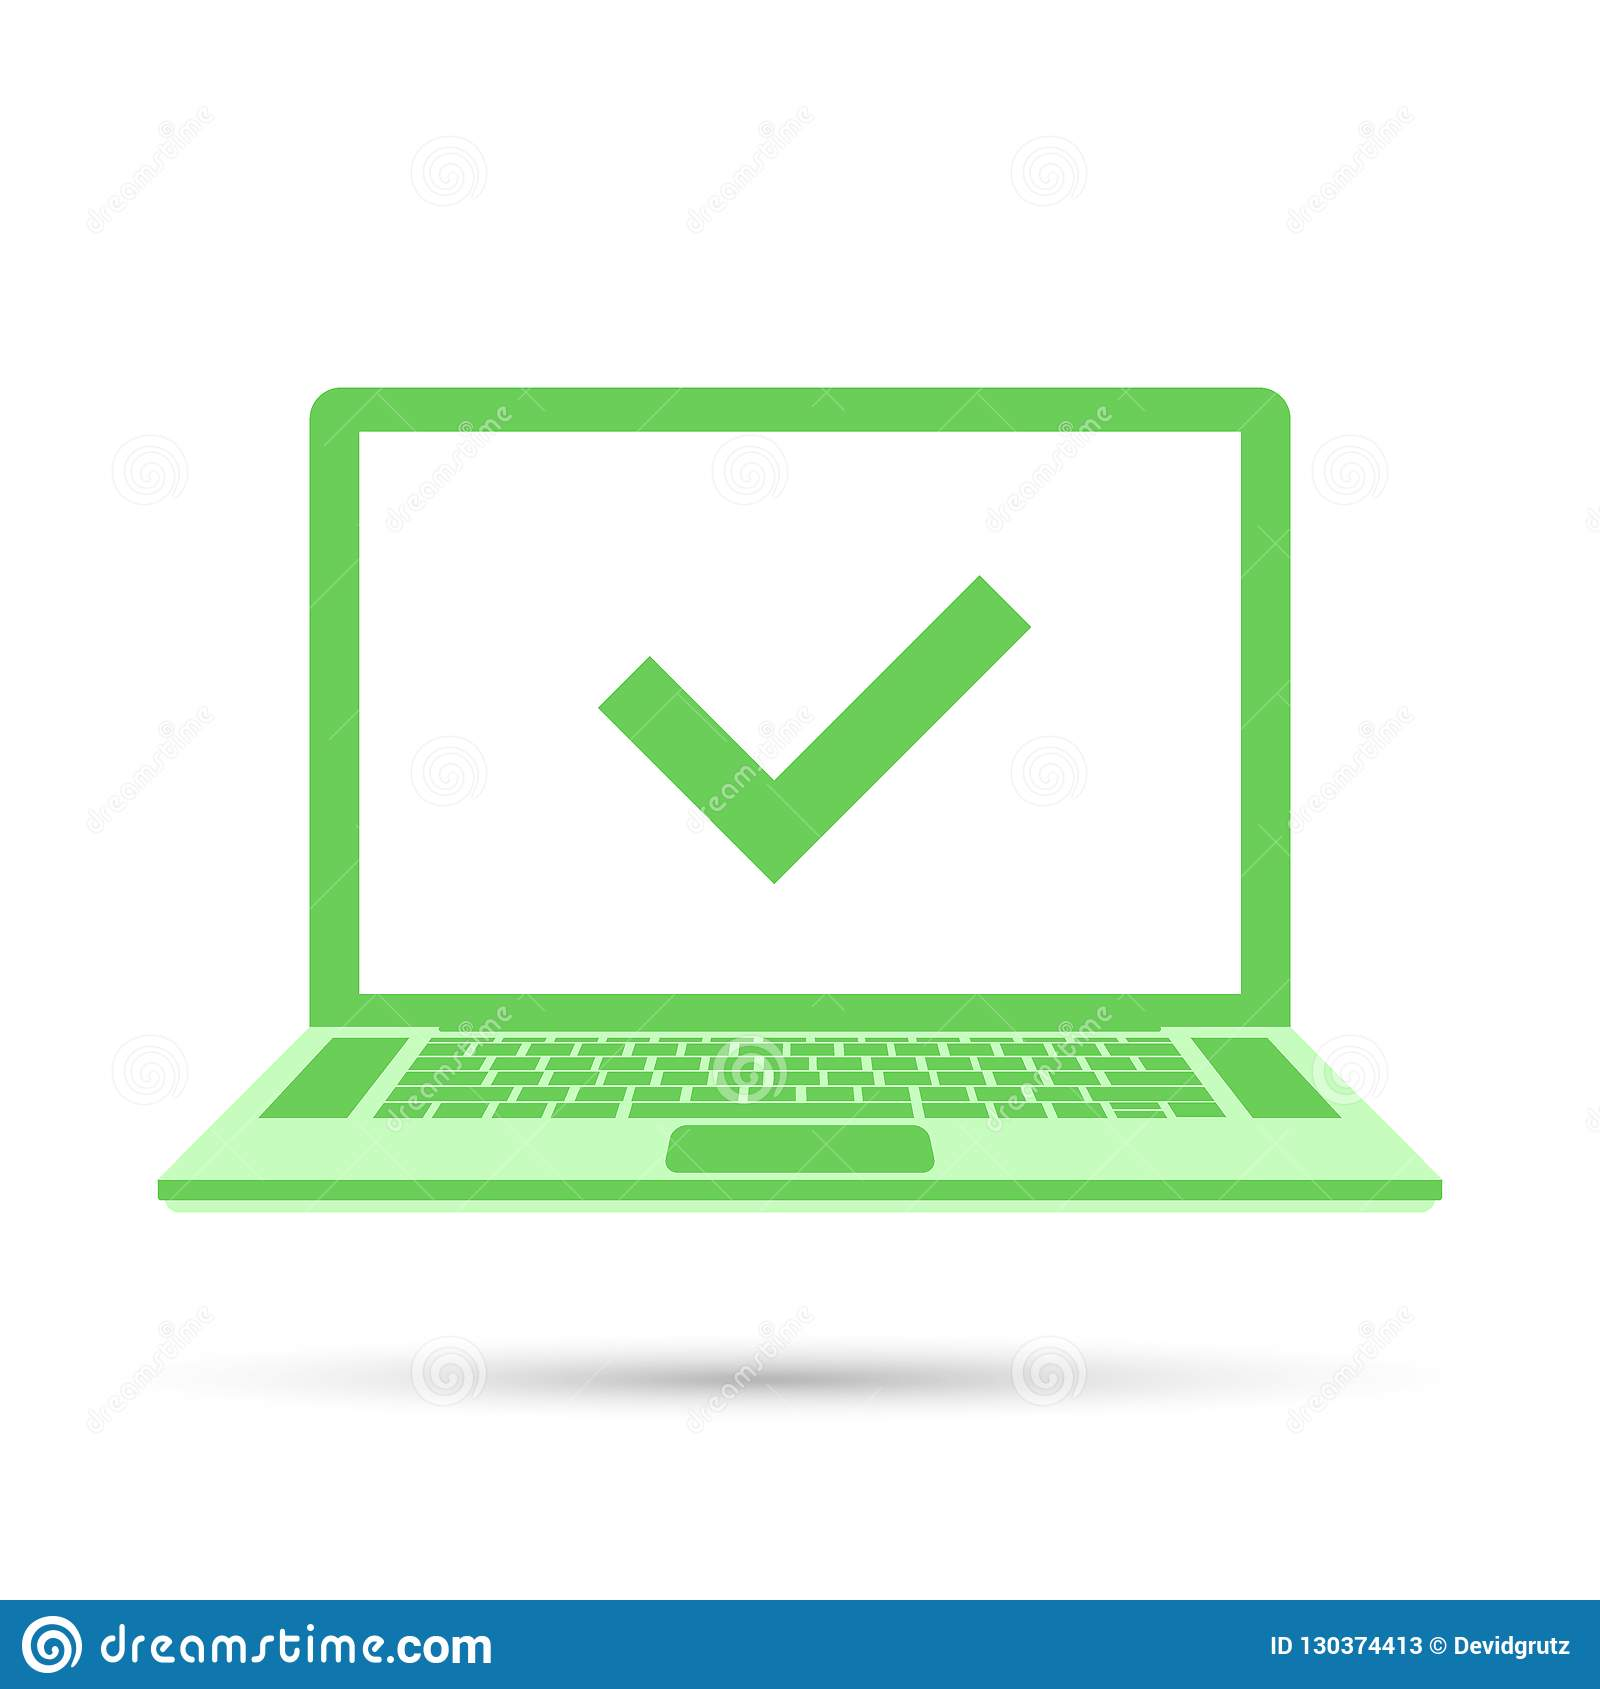 Laptop with check mark on green screen. Ok concept icon. Vector illustration in flat style isolated on white background